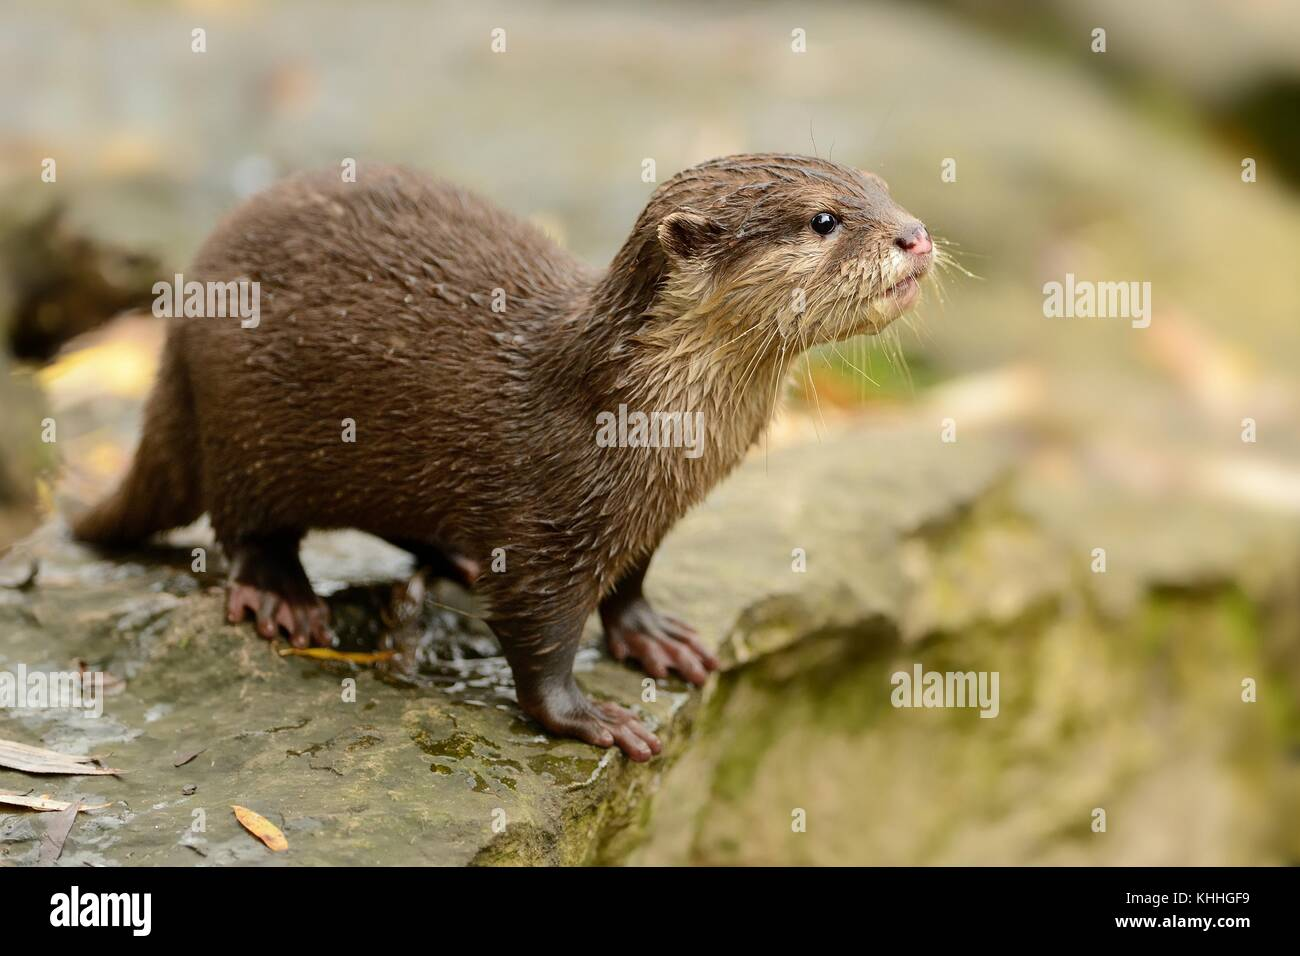 Oriental Small-clawed Otter - Aonyx cinerea on the riverside - Stock Image